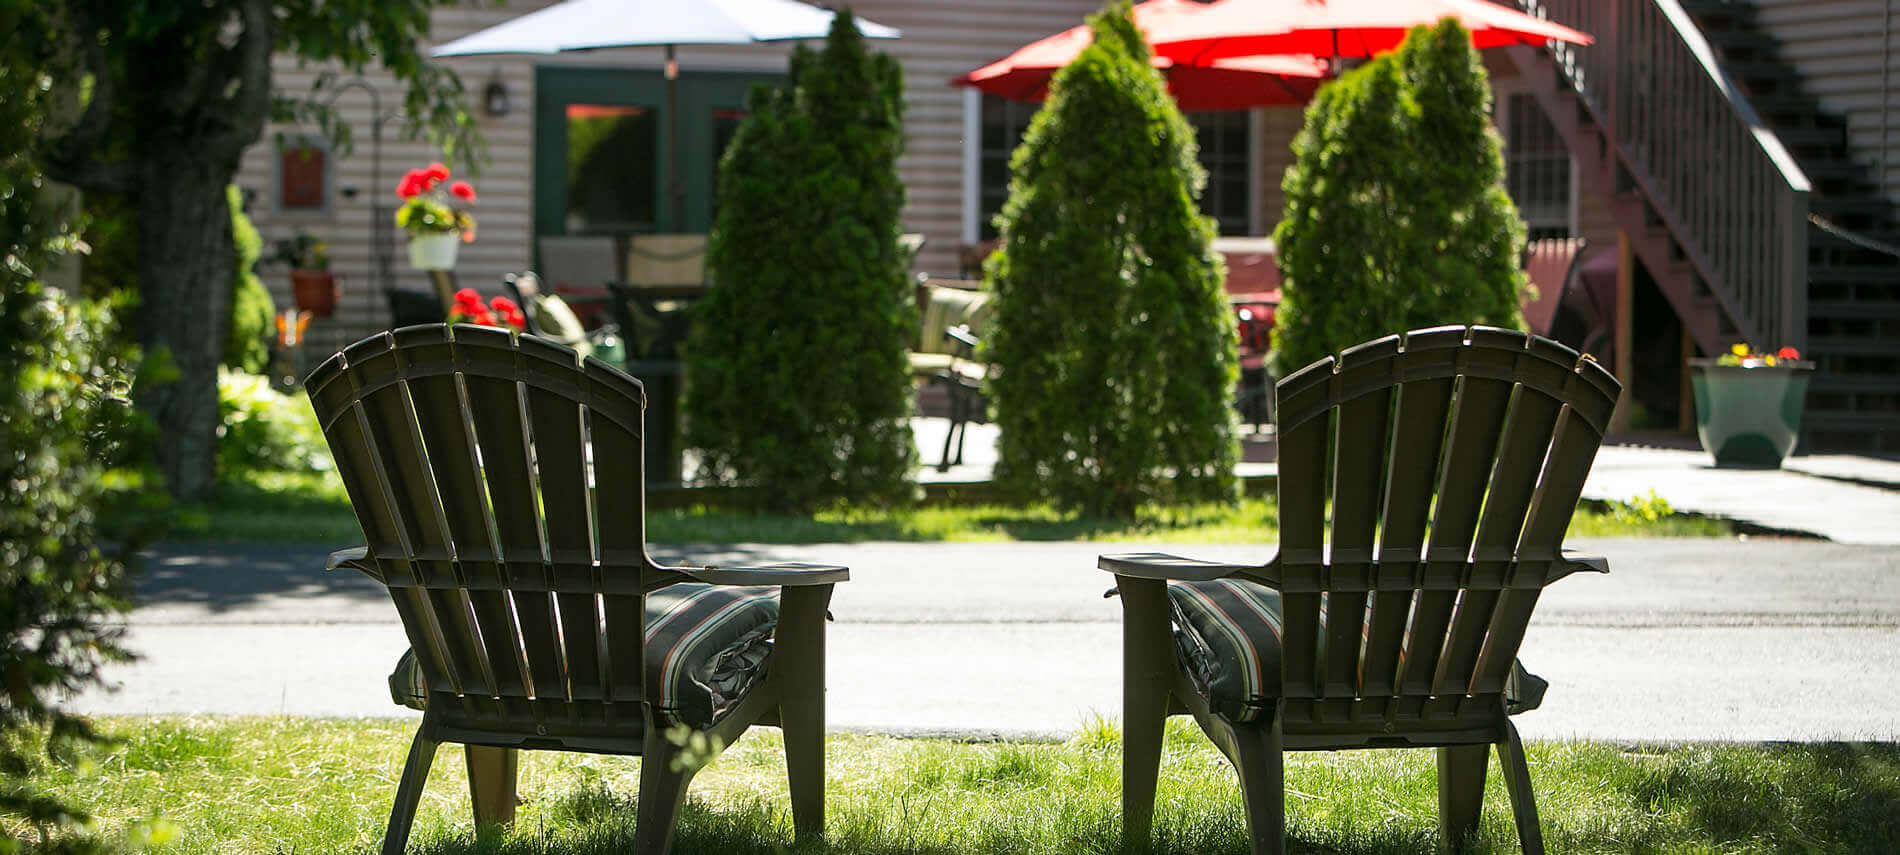 Two Adirondack chairs with green striped cushions sitting on grass